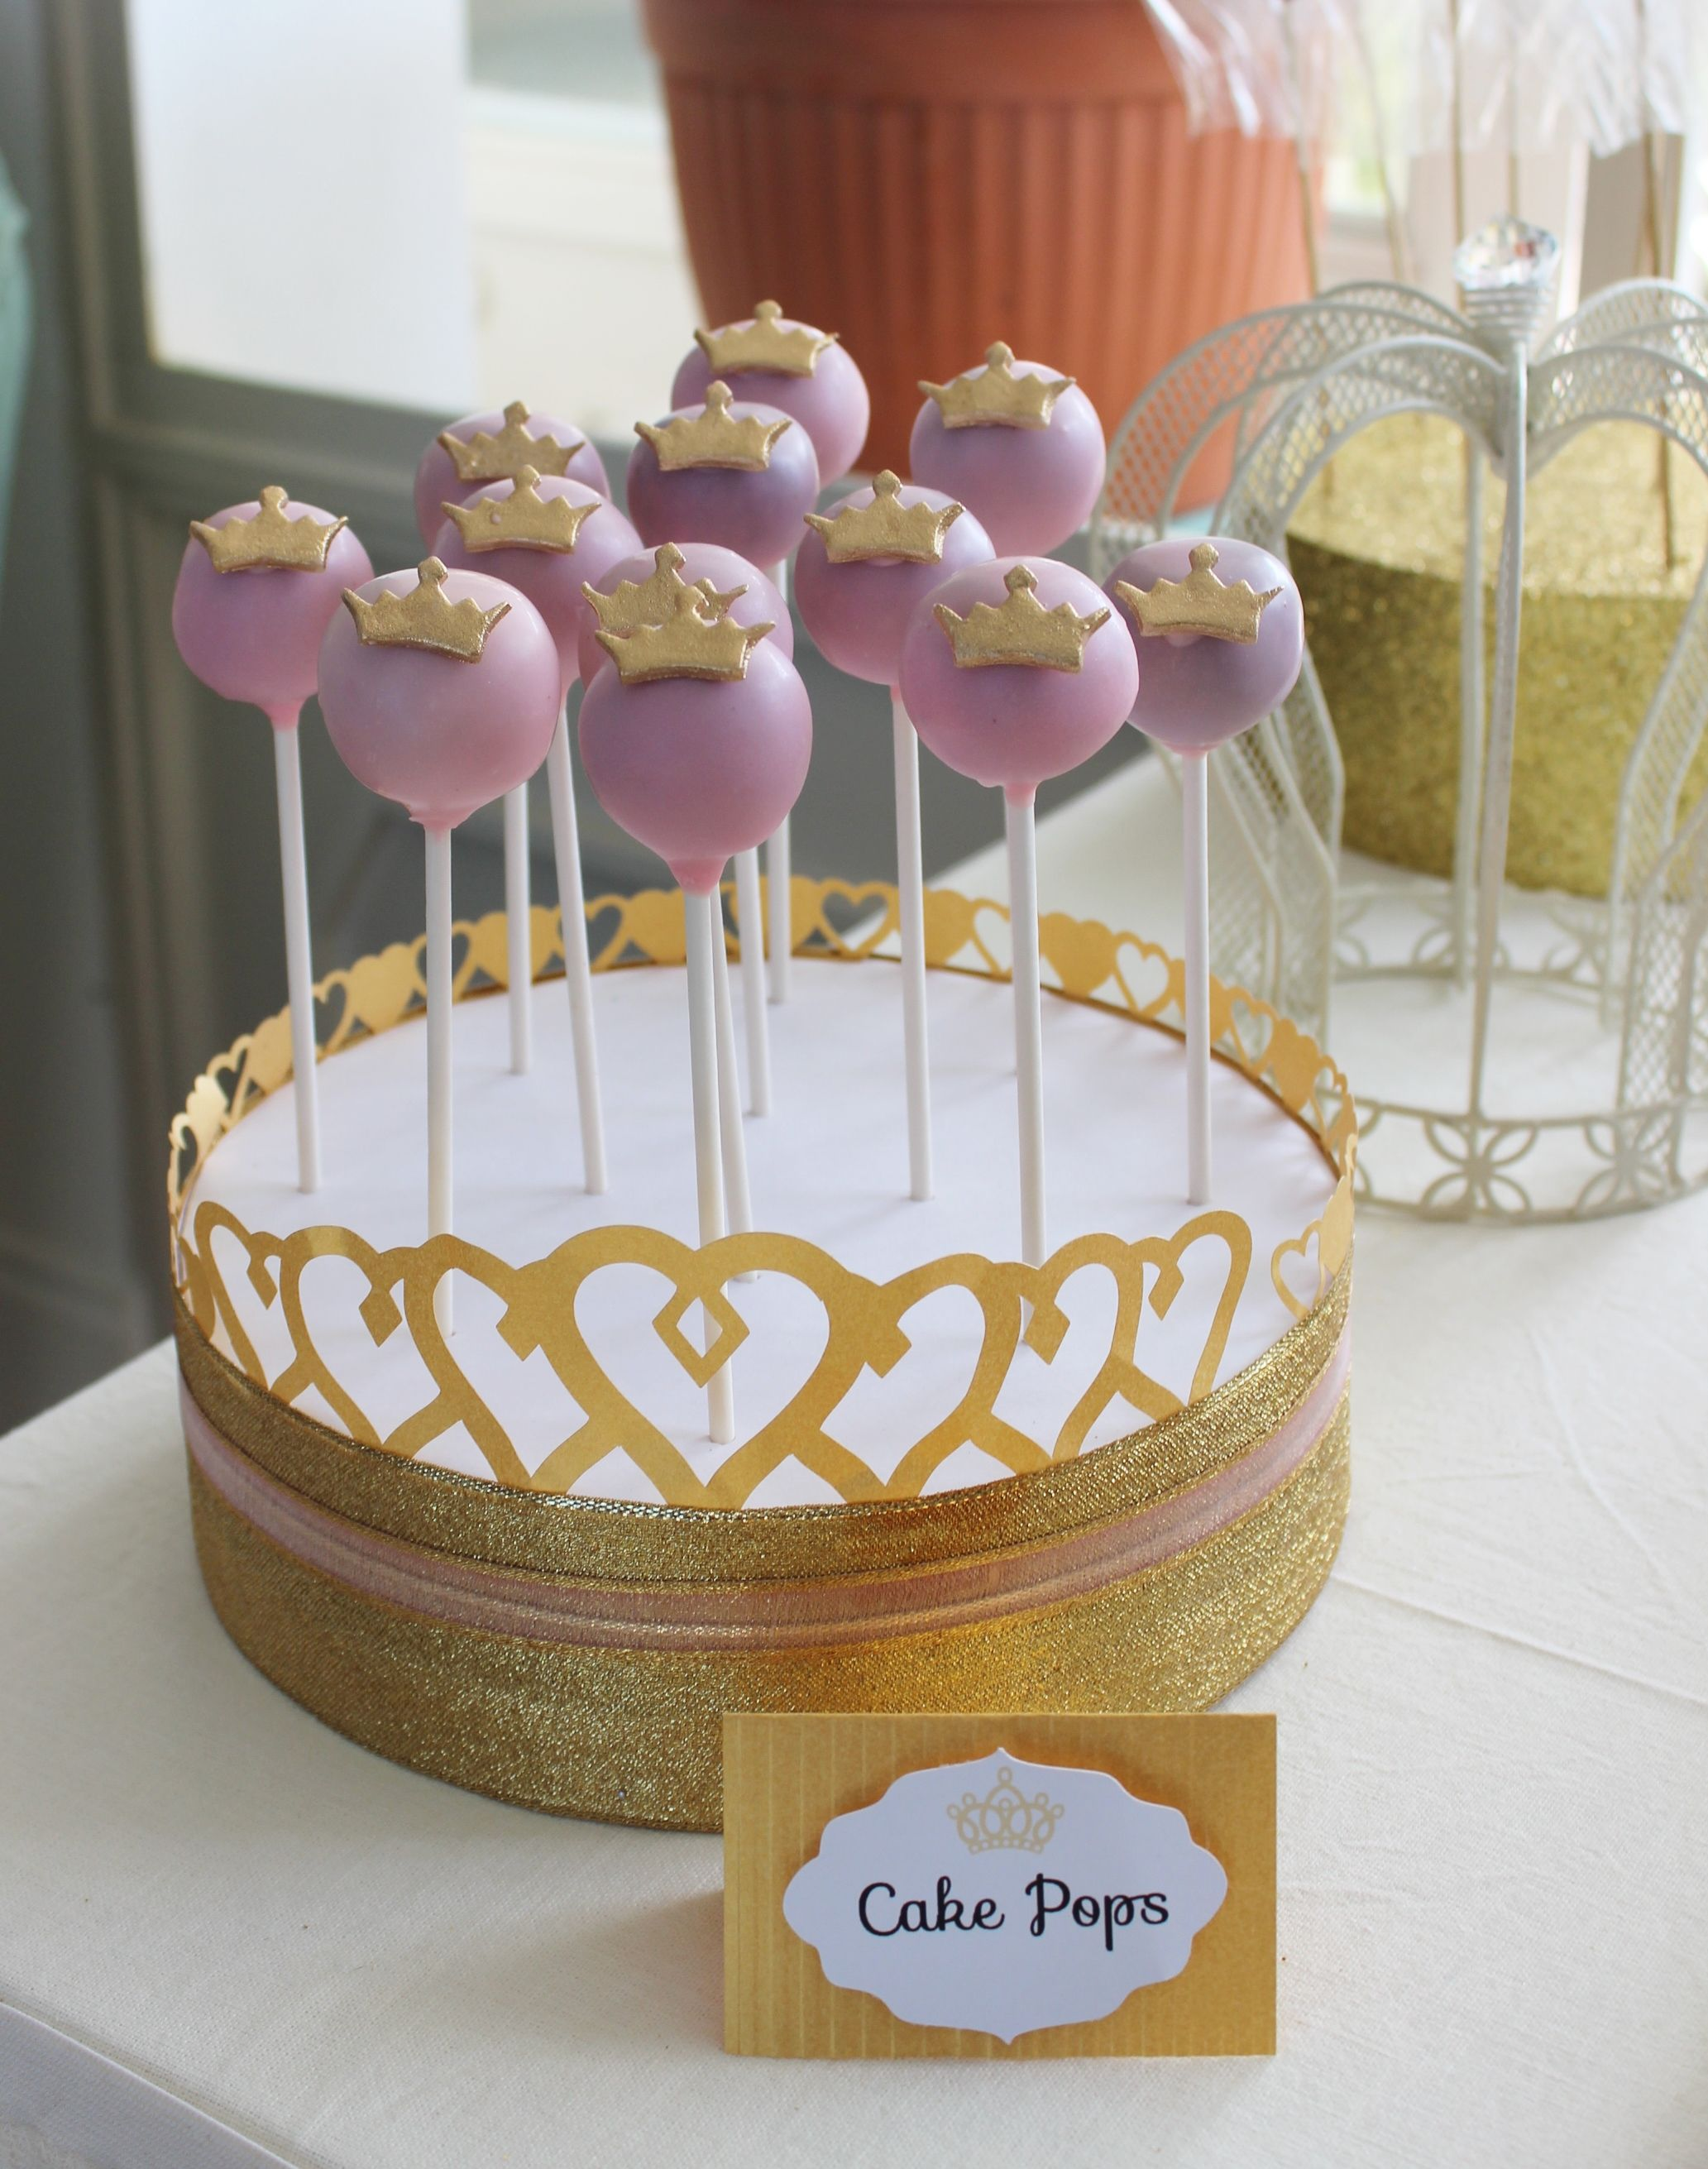 cake pop ideas wedding shower%0A Pink and Gold Princess Cake Pops by Violeta Glace